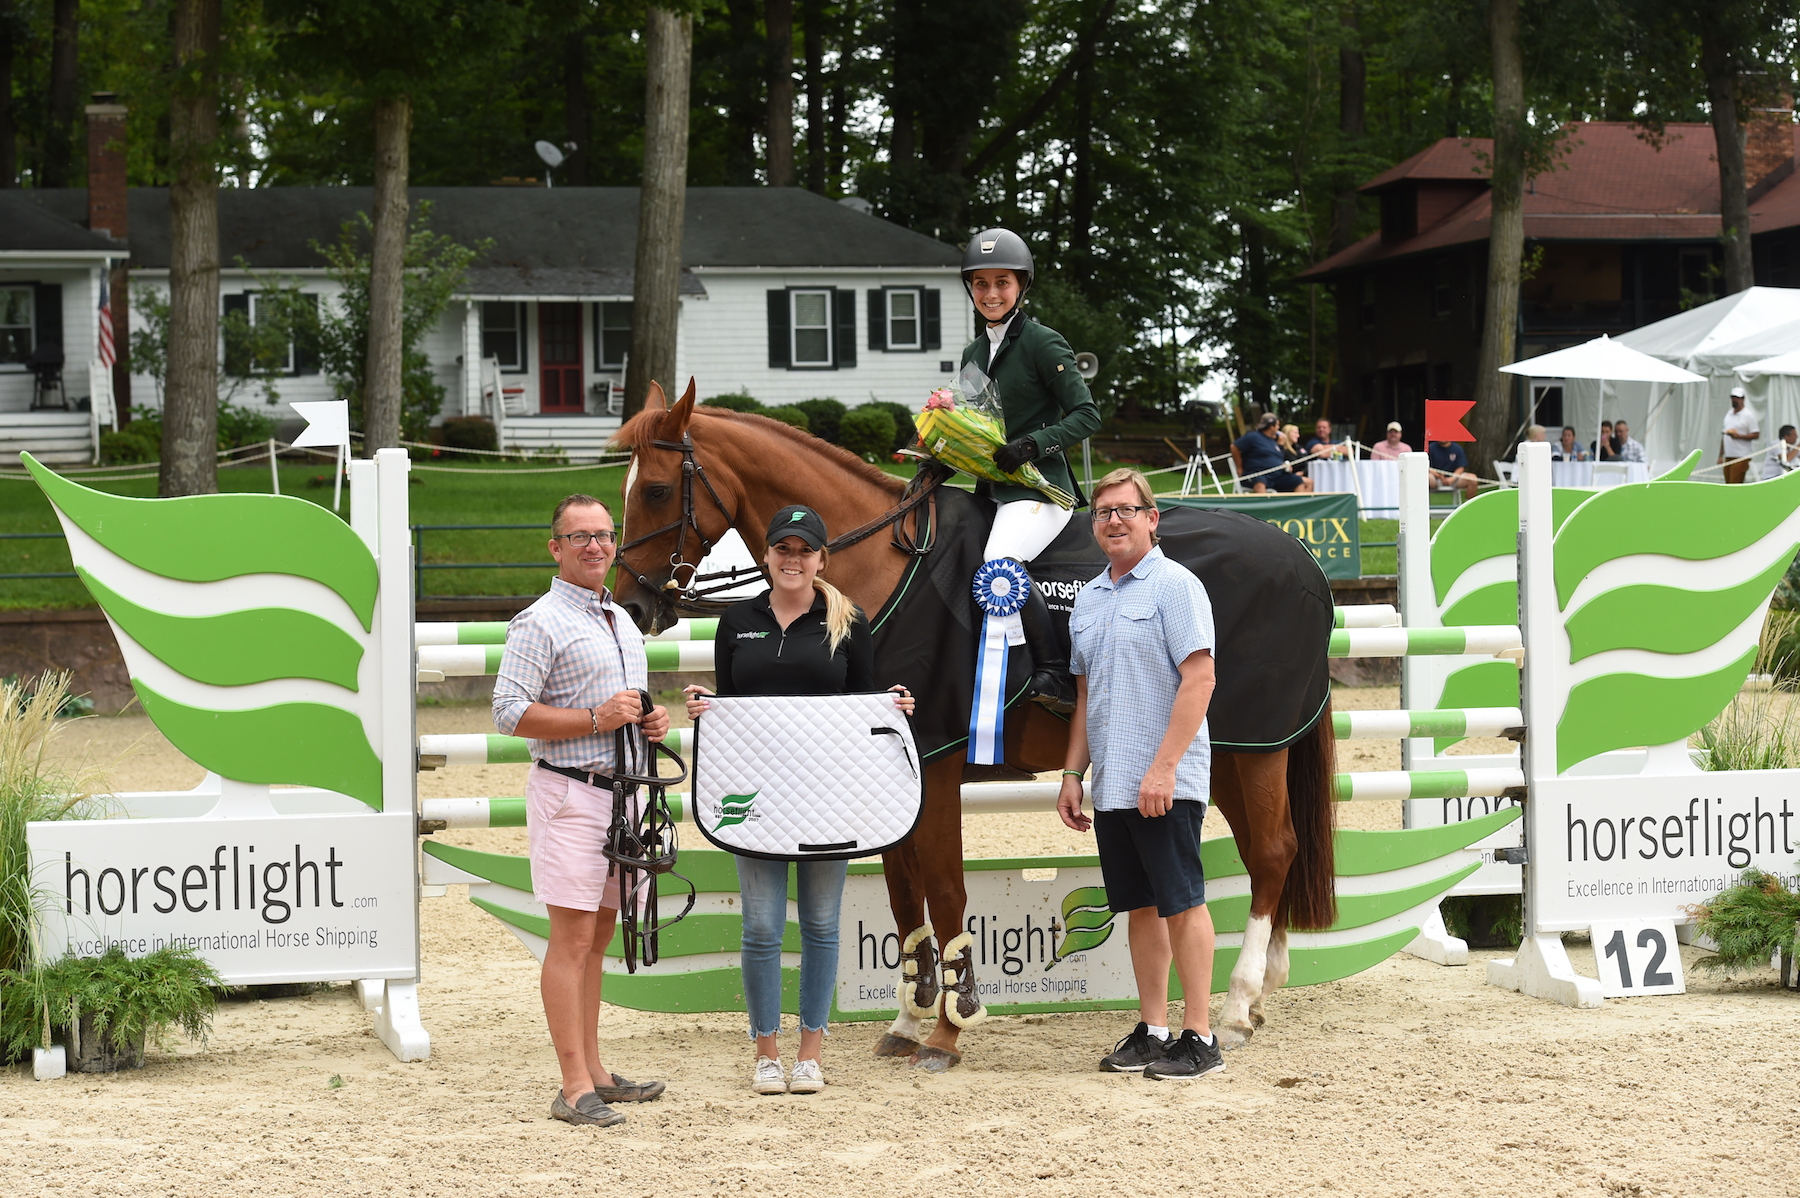 Sima Morgello and Orientales accepted their award from Tucker Ericson and Michael Dowling, co-owners of Monmouth at the Team, and Kaylee Donahue from Redfield Tack. Prizes included a Nunn Finer bridle from Boot and Bridle, a Back on Track Therapeutic Mesh Sheet and a Horseflight saddle pad from Redfield Tack. Photo by Anne Gittins Photography